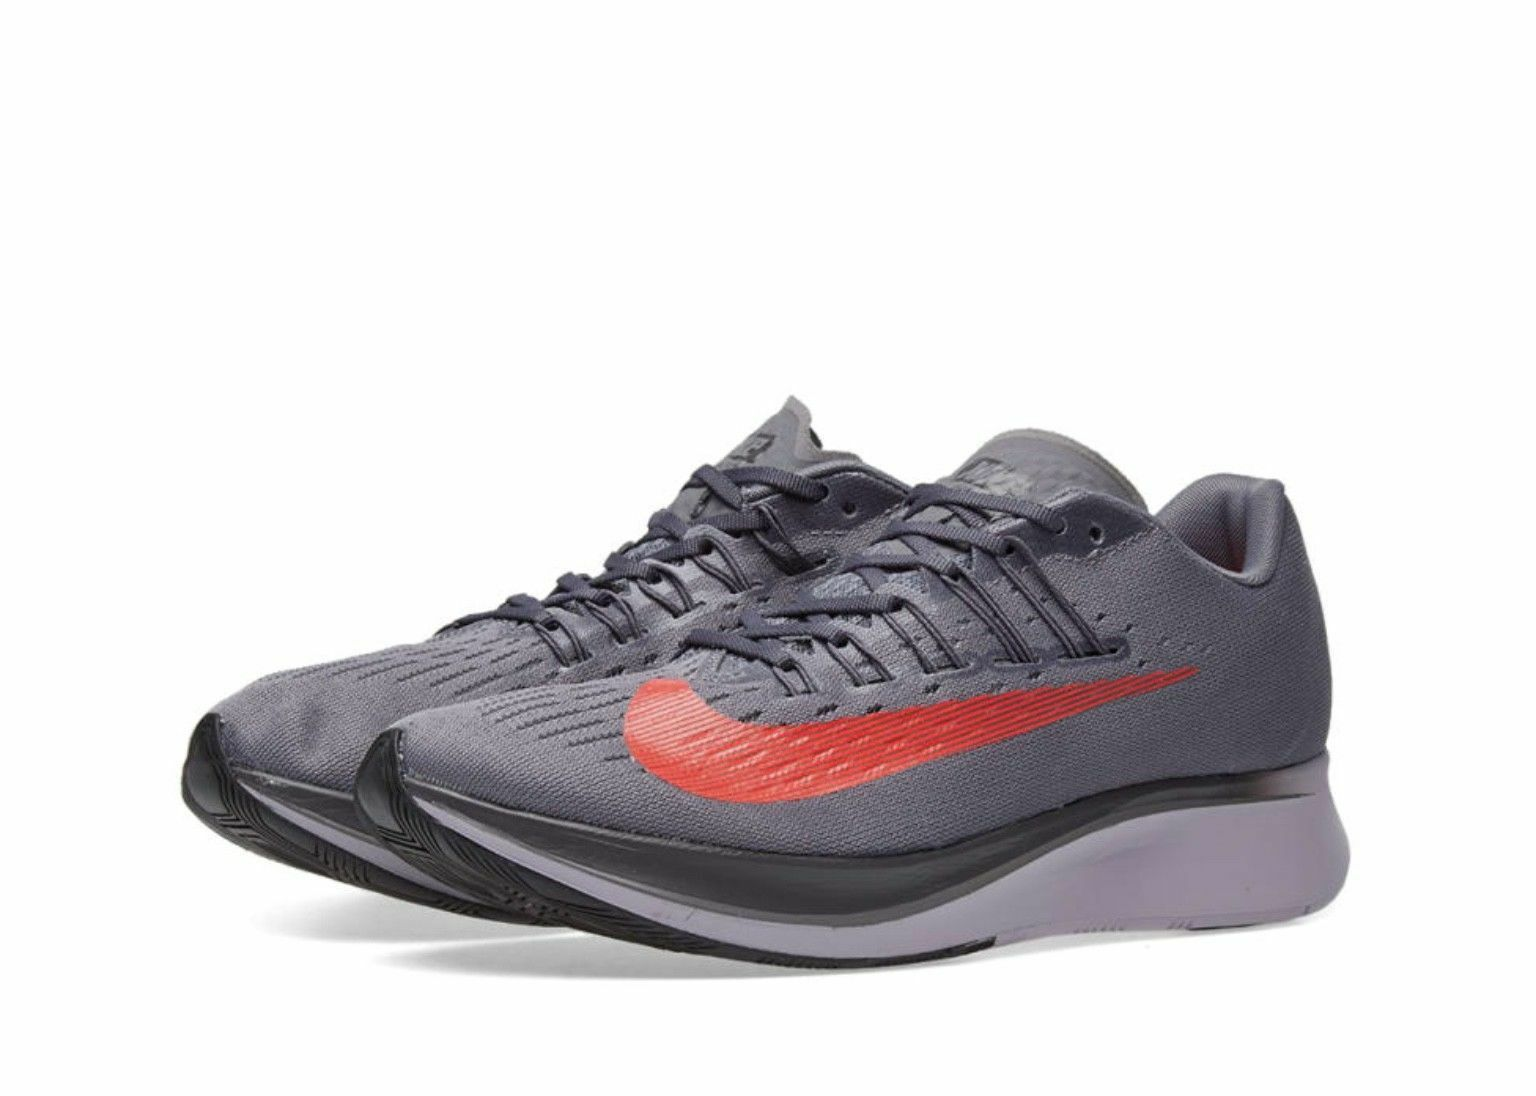 Men's Nike Zoom Fly Running shoes Trainer 880848-004 UK7 EU41 US8